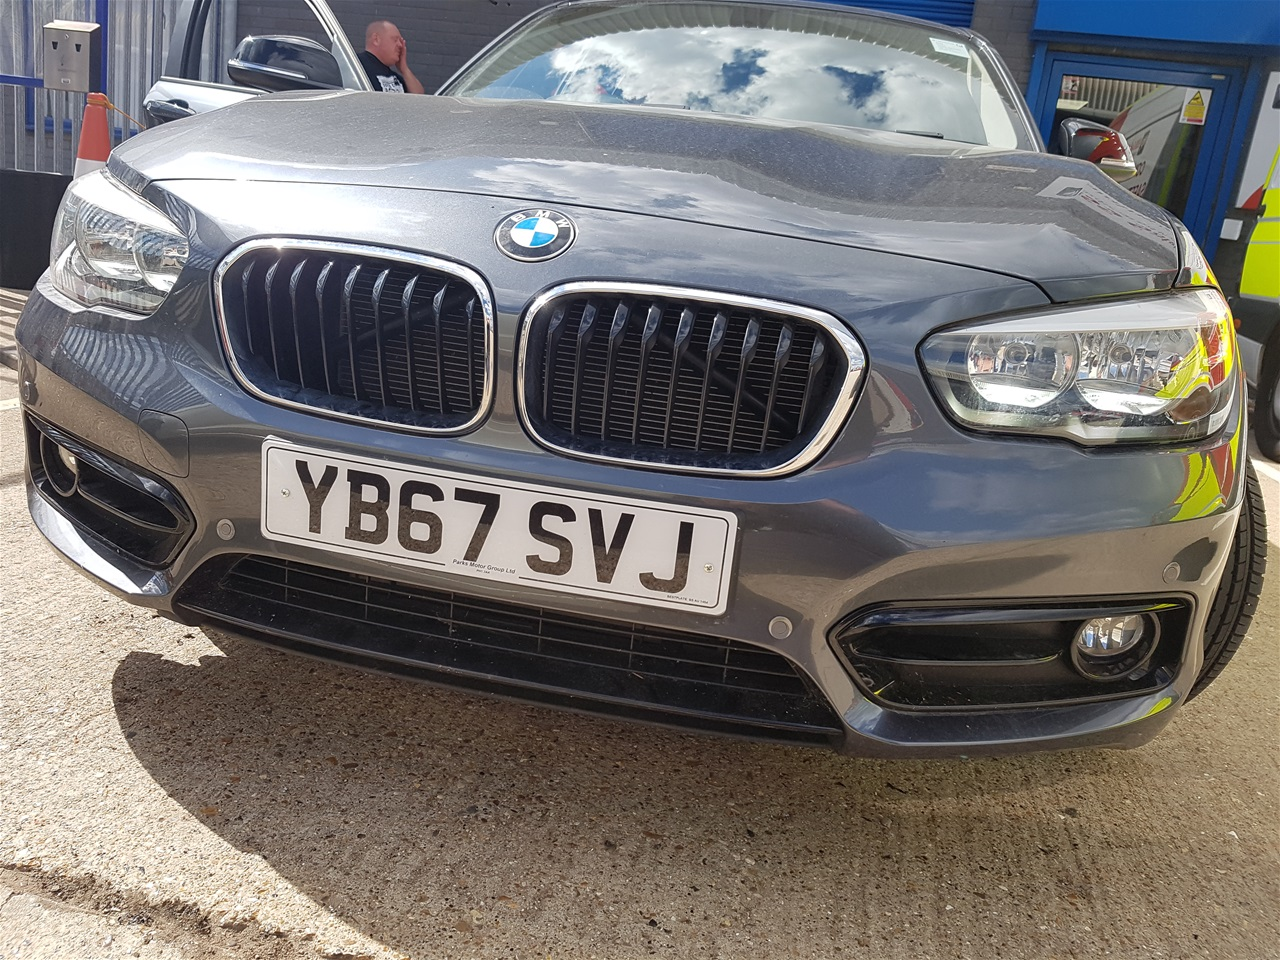 BMW 1 series front colour coded parking sensors